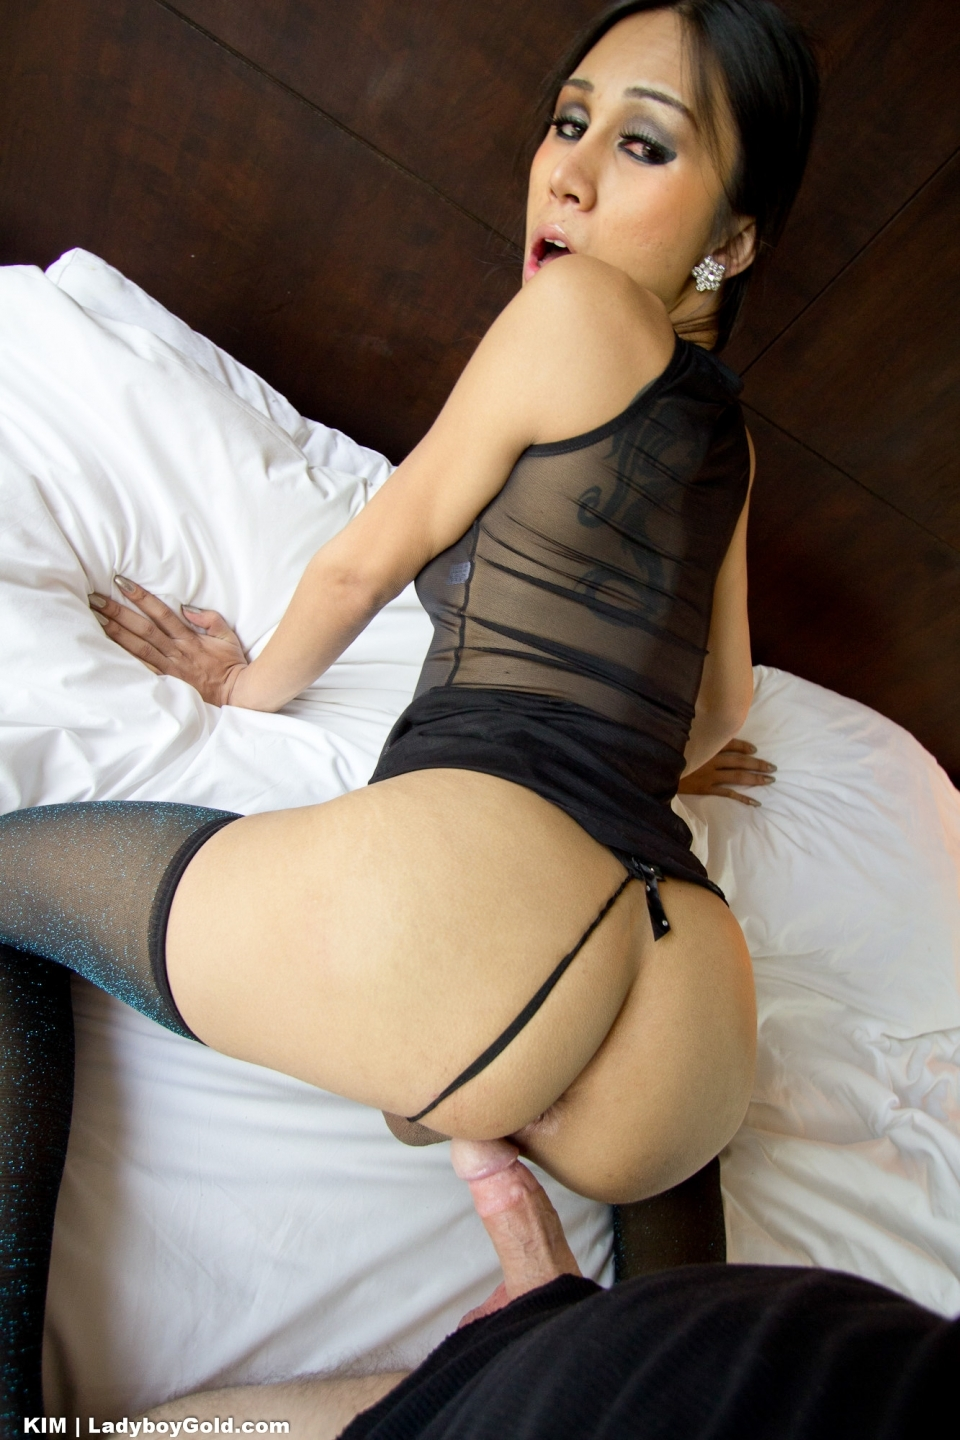 Kim Gives A Spicy Rimjob Blow Job And Has Her Gaping Bum Filled